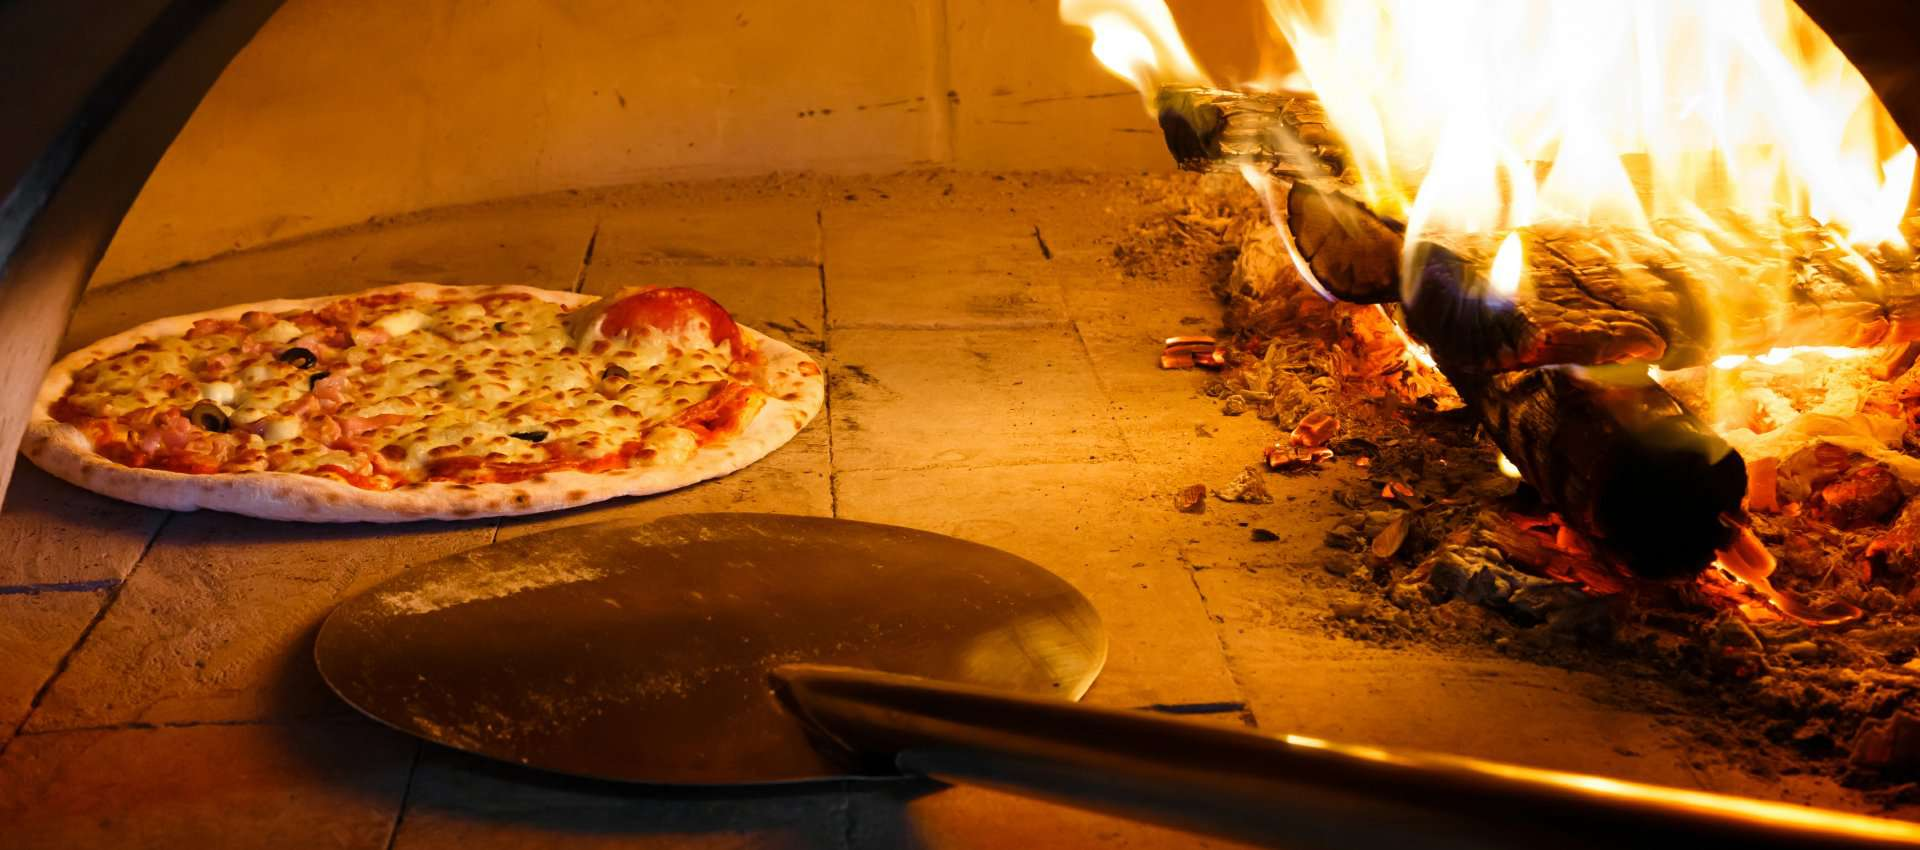 Delicious stone-fire cooked pizza from 486 degrees pizza catering service los angeles